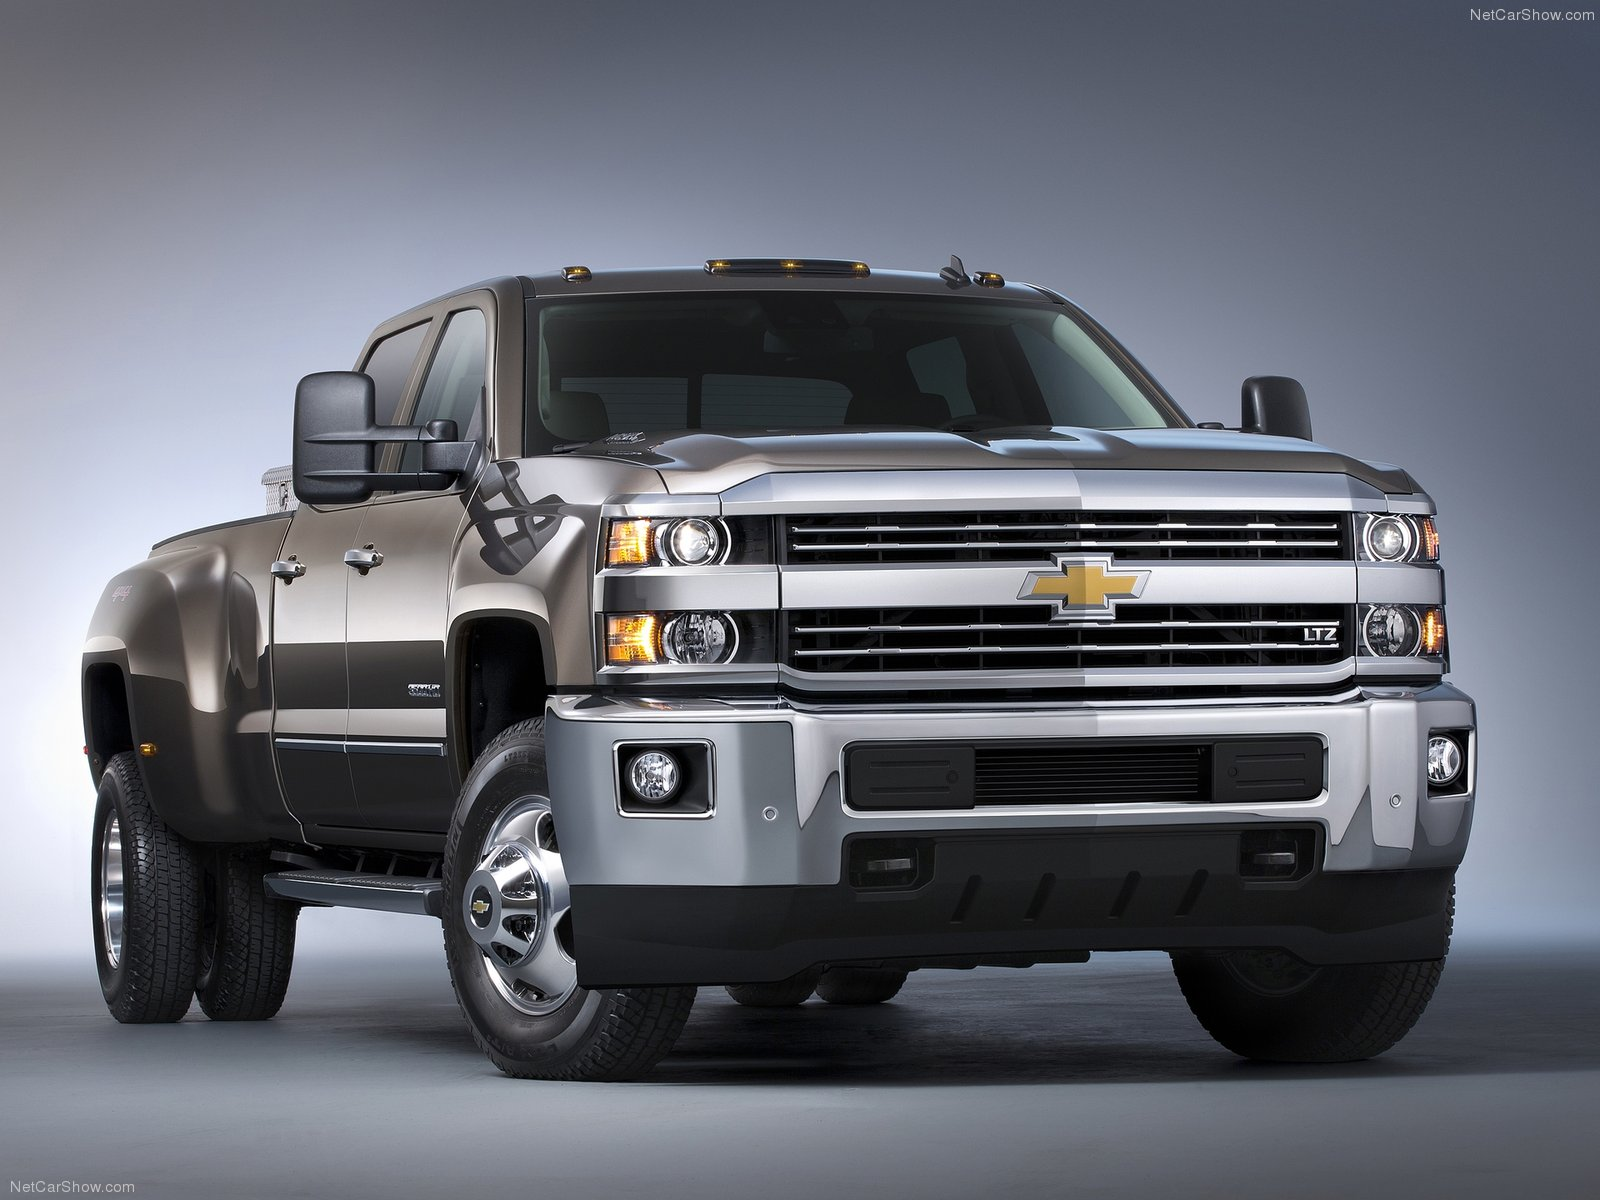 Chevrolet Silverado HD photo 108217